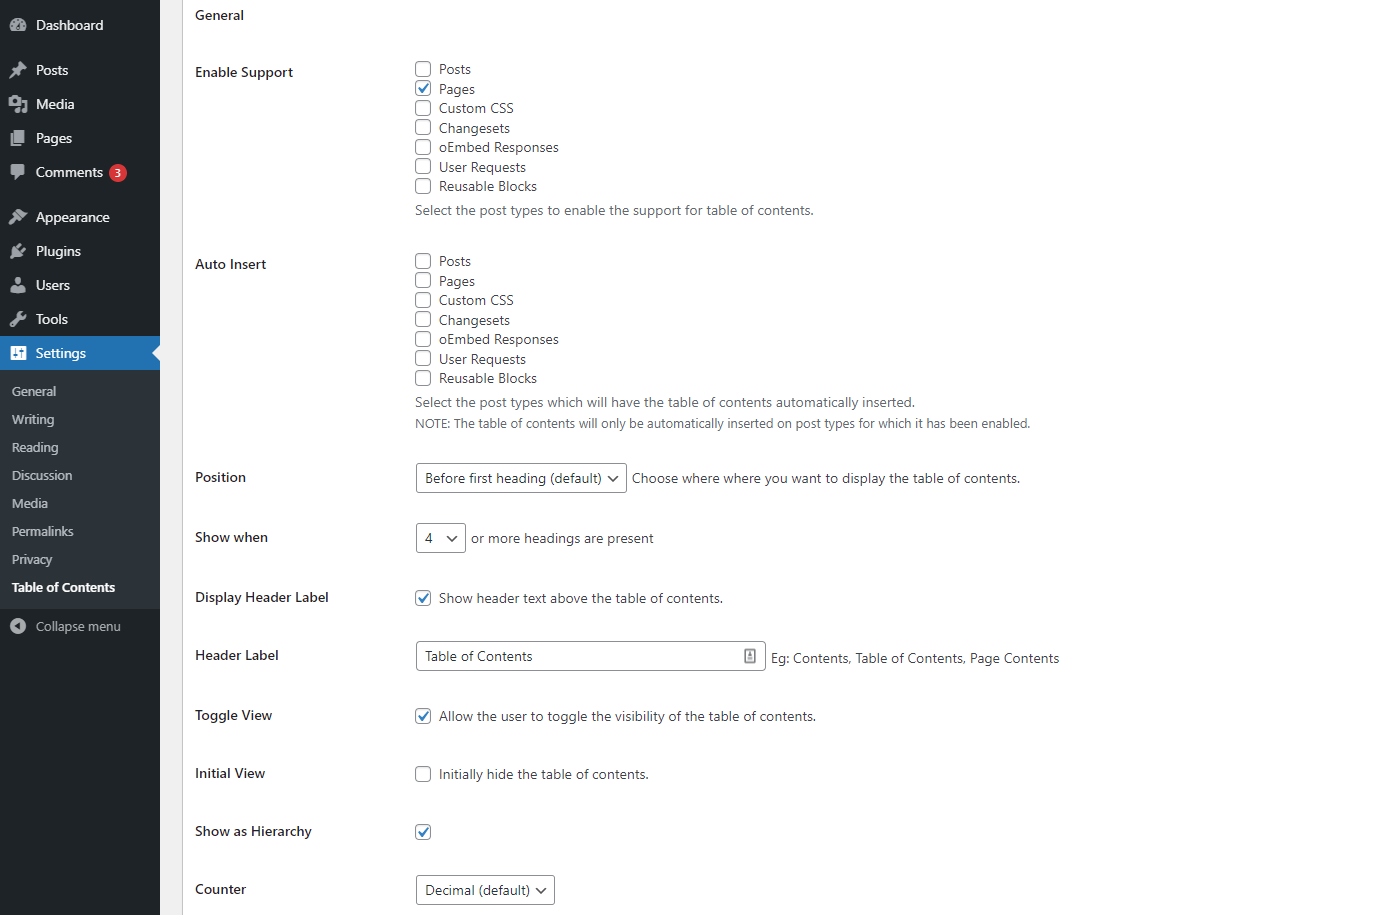 The Easy Table of Contents plugin settings screen